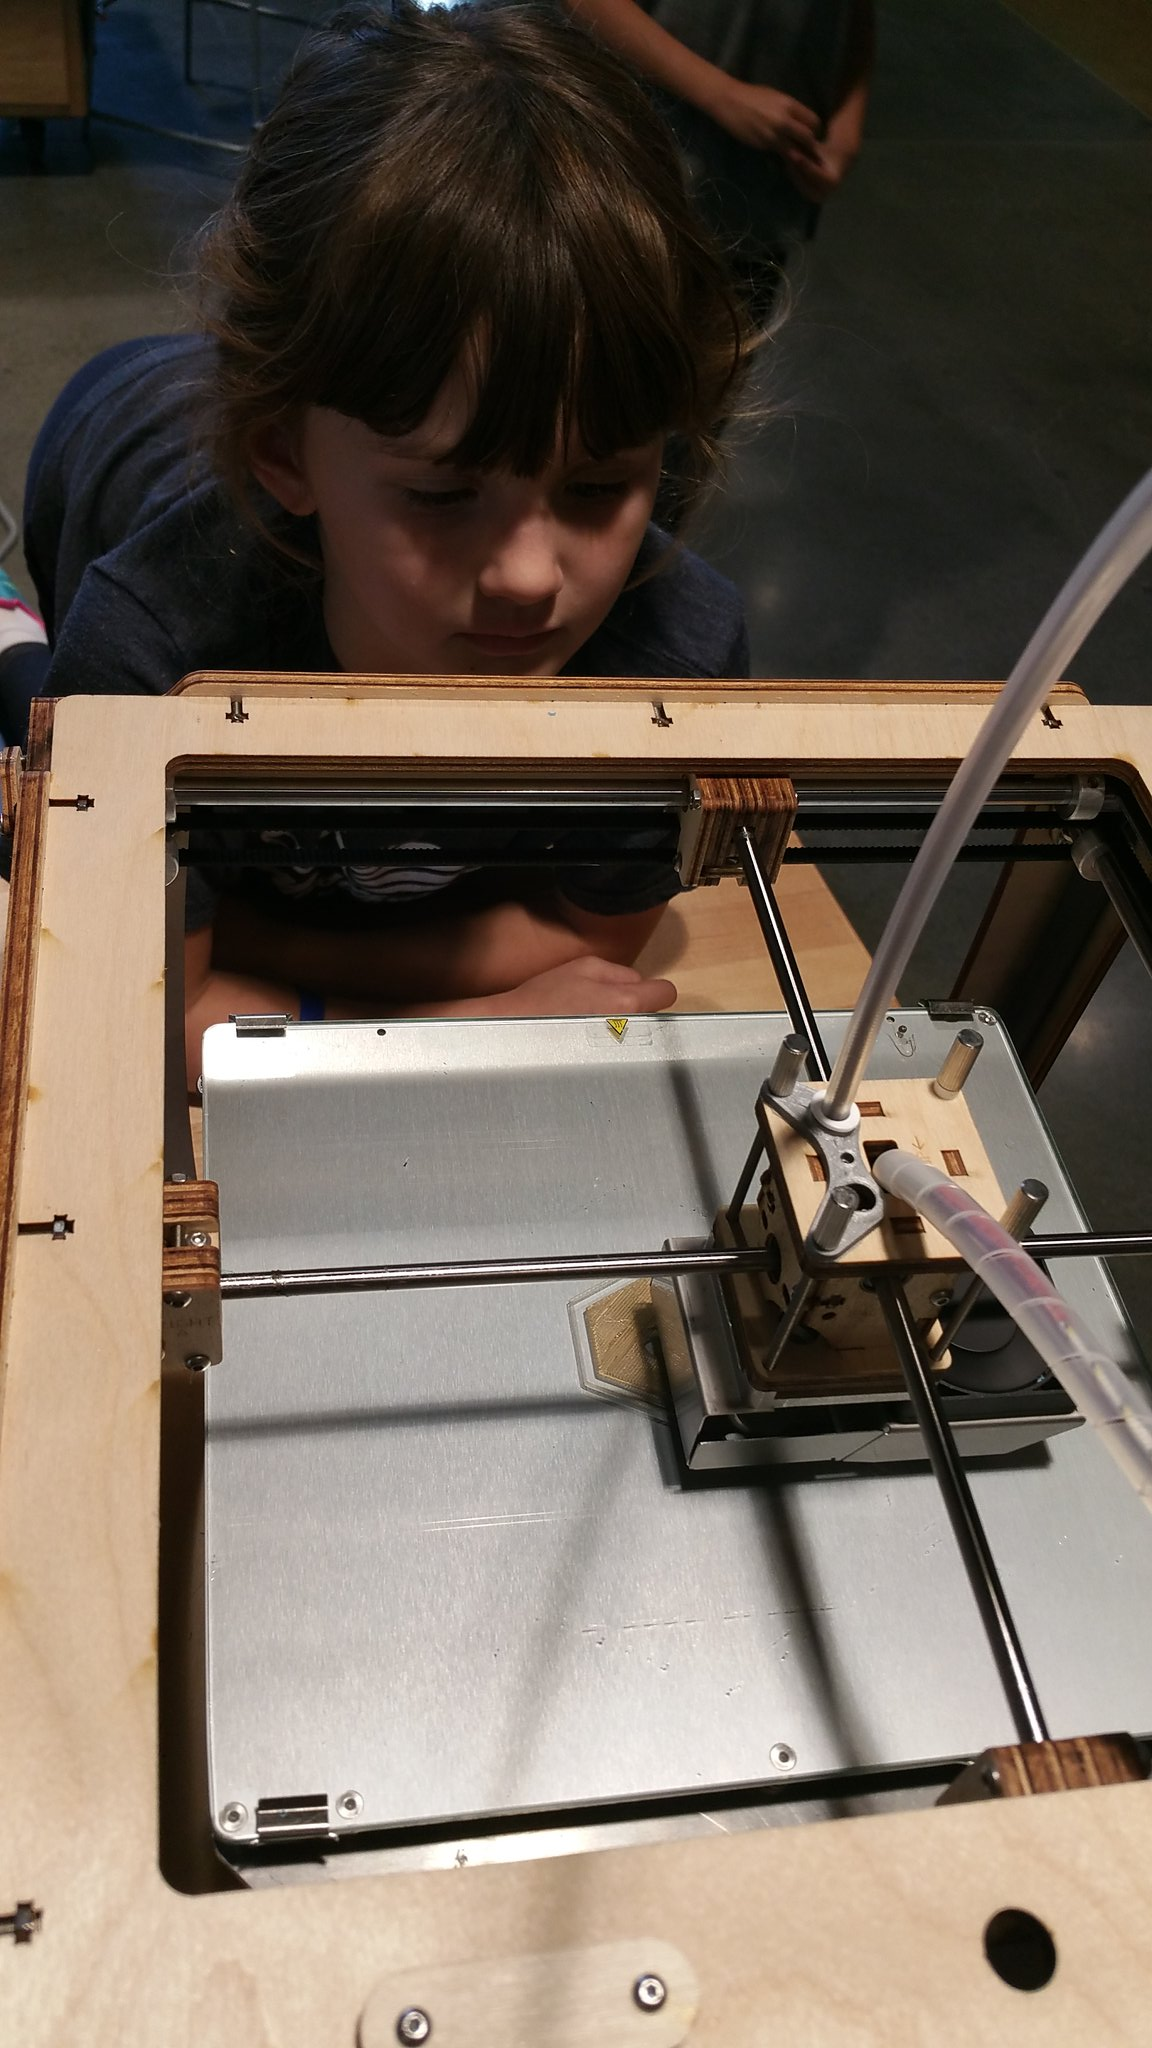 """""""3Dprinting is like writing. It starts with an outline and then colors in the details"""" #kidquote #MakerEd #elemaker #MVPSchool cc:@Ultimaker https://t.co/OxrkVy4ZhM"""